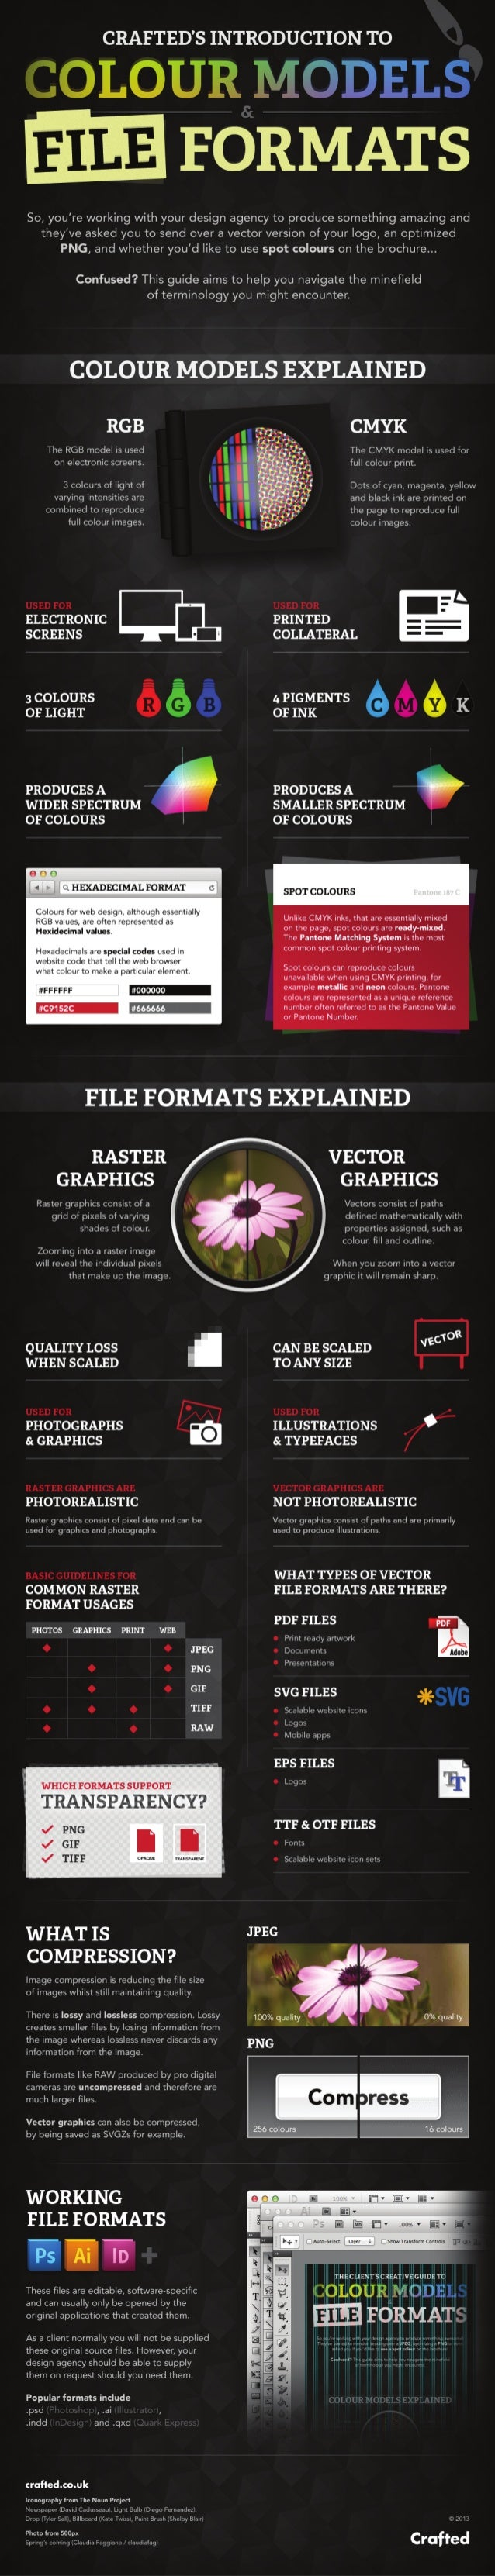 Infographic: a guide to colour models and file formats